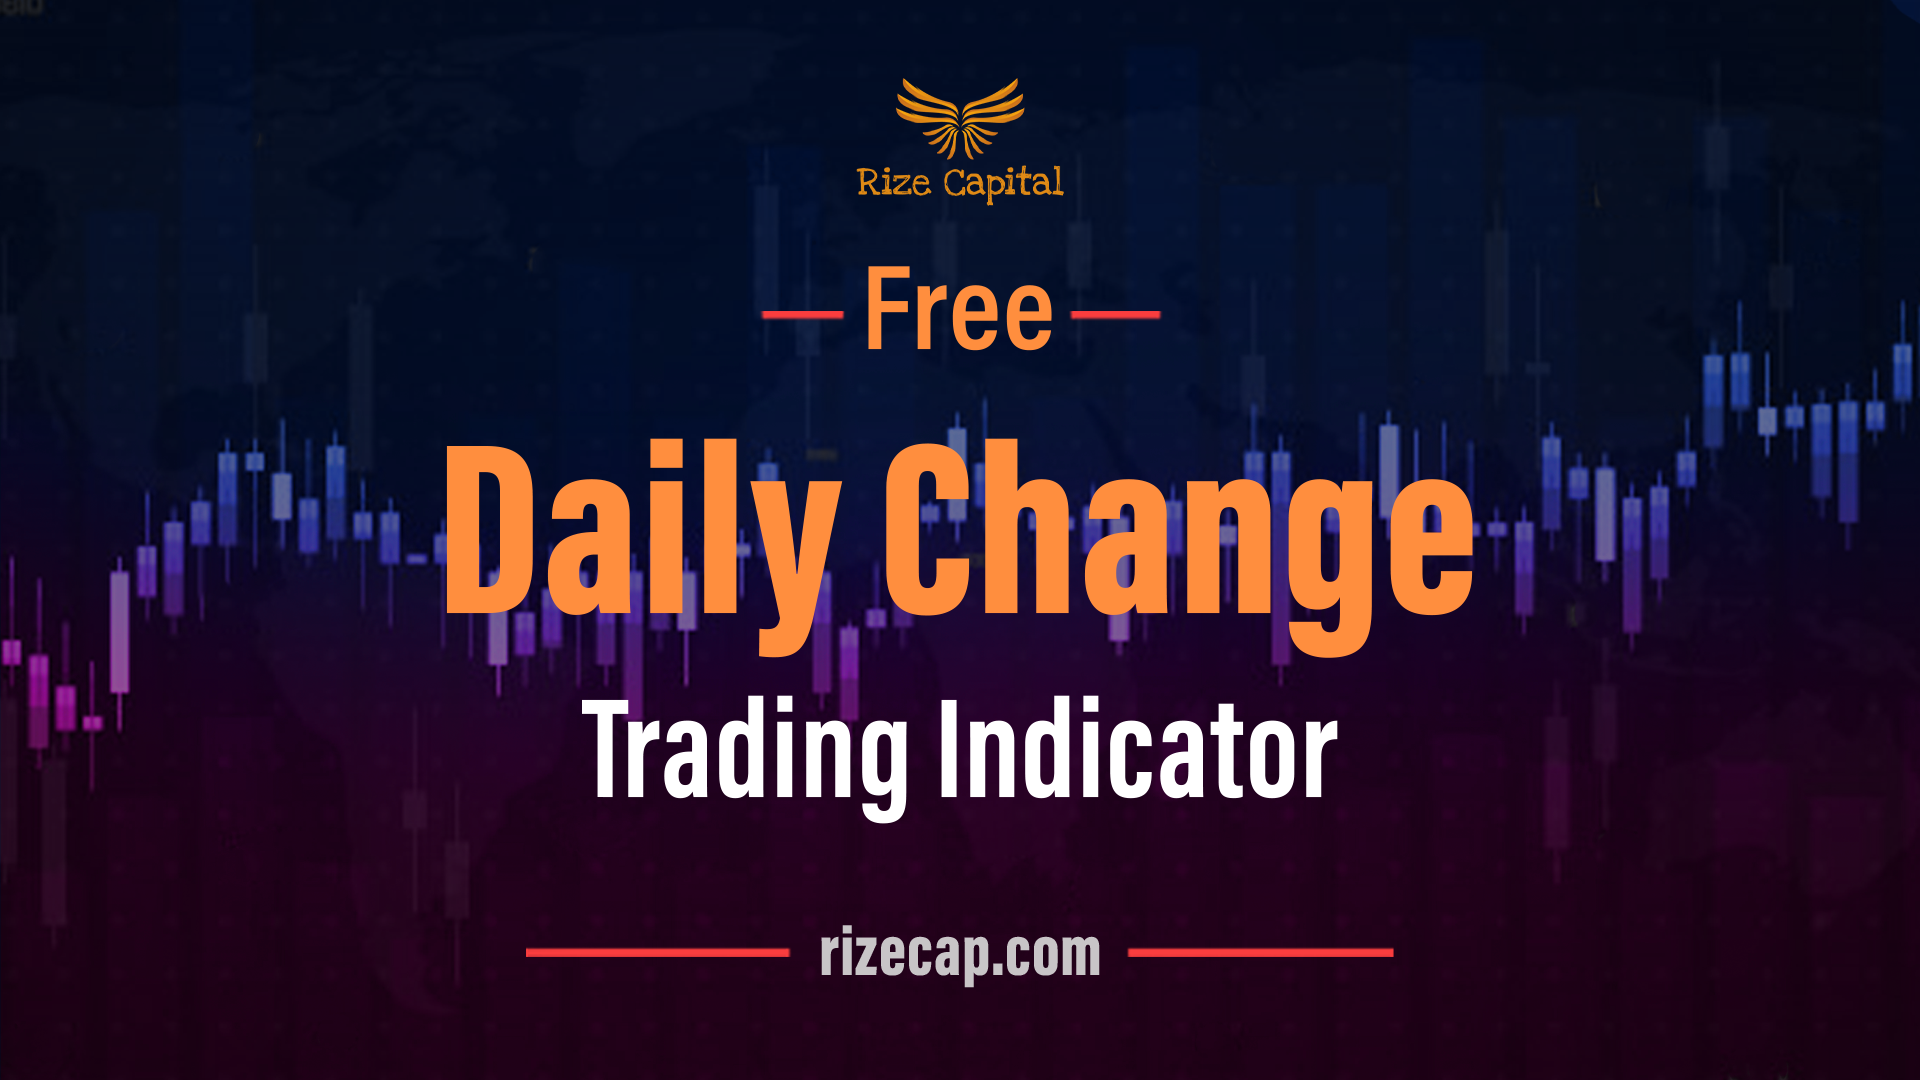 Daily Change Free indicator